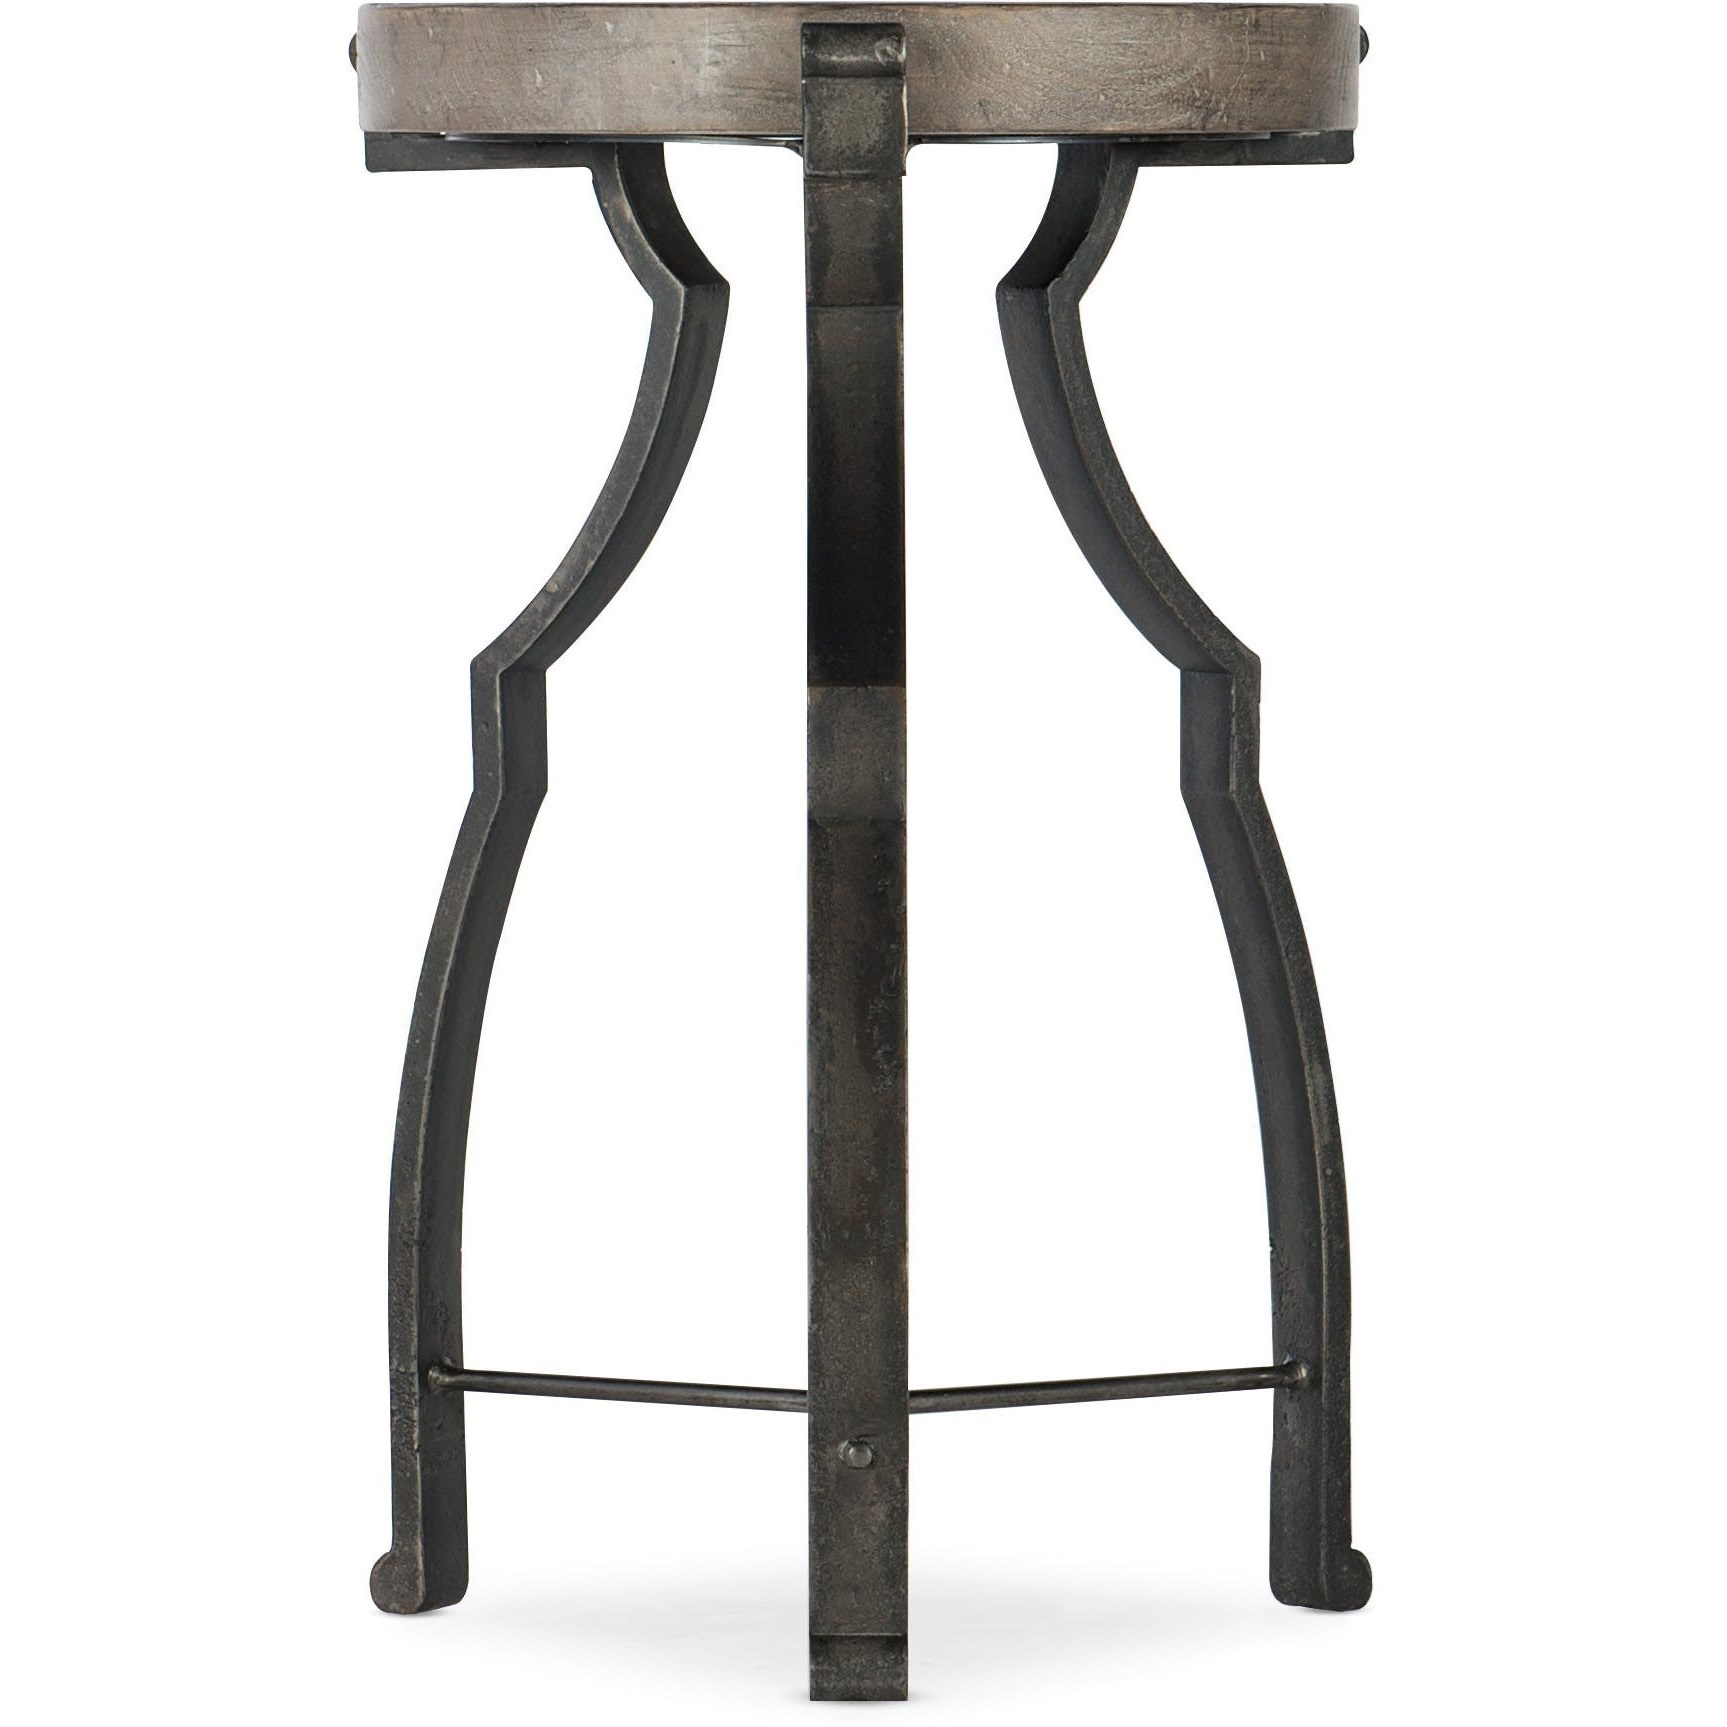 Beau Modele Relaxed Vintage Round End Table With Glass Top By Hooker Furniture